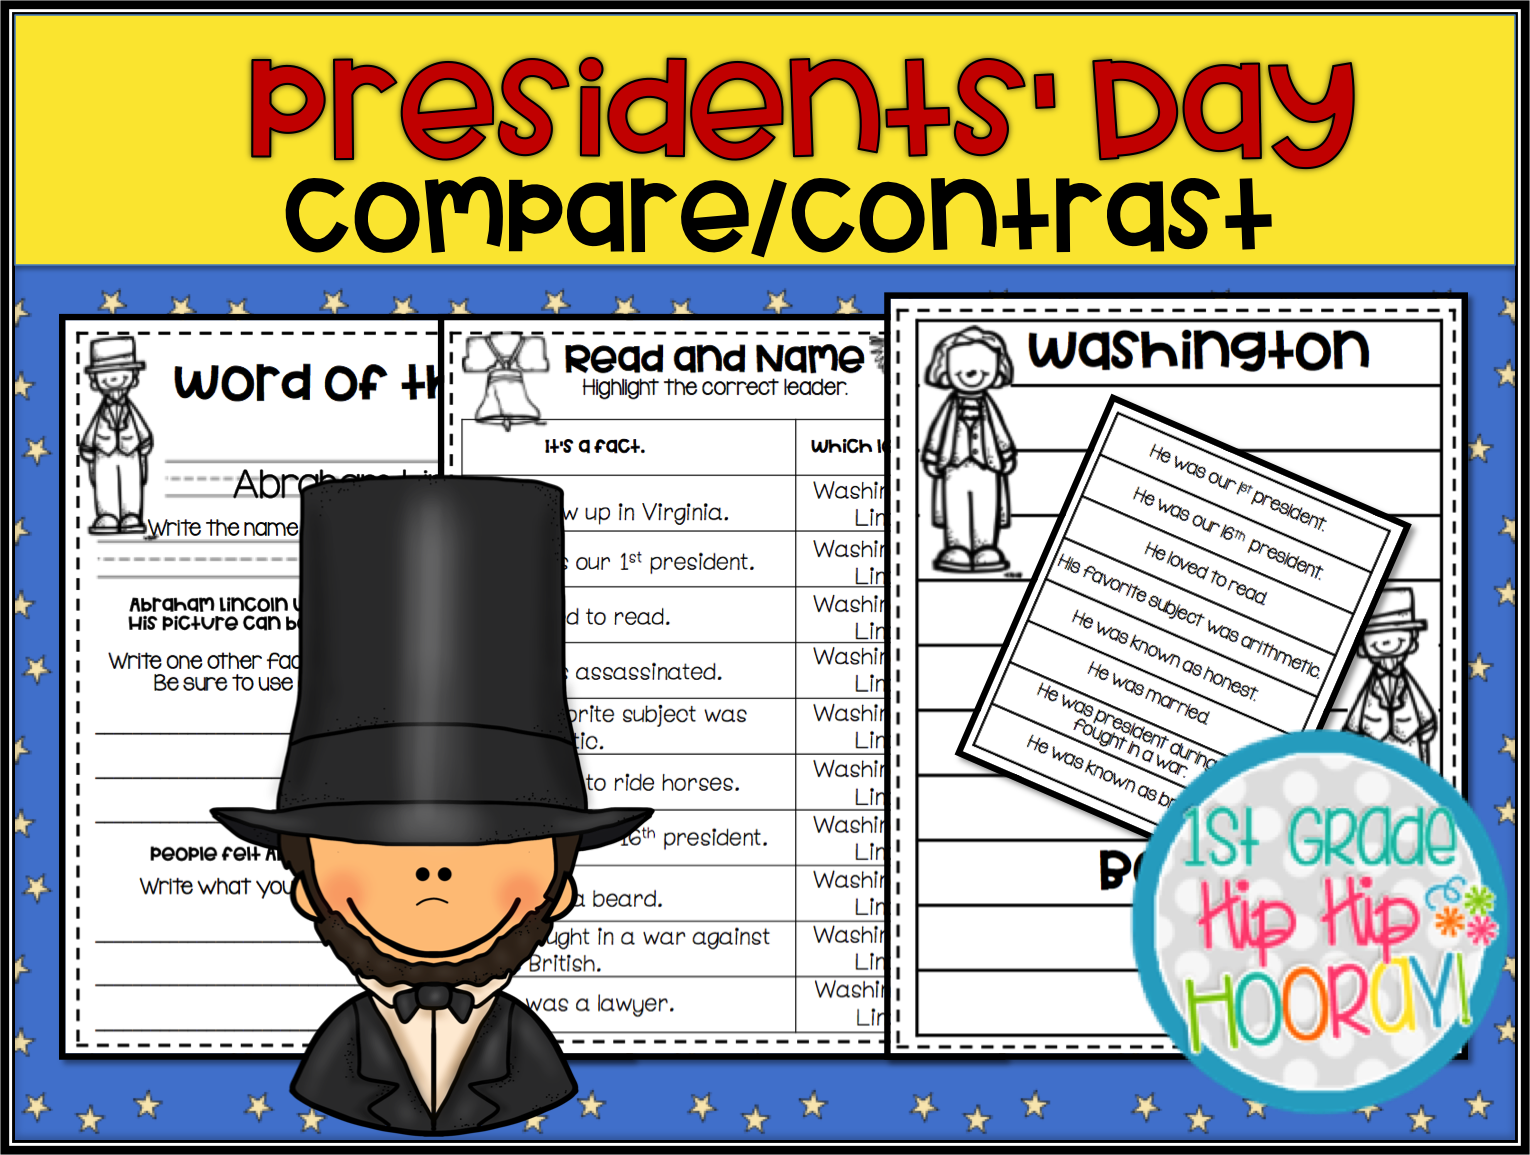 1st Grade Hip Hip Hooray Presidents Day